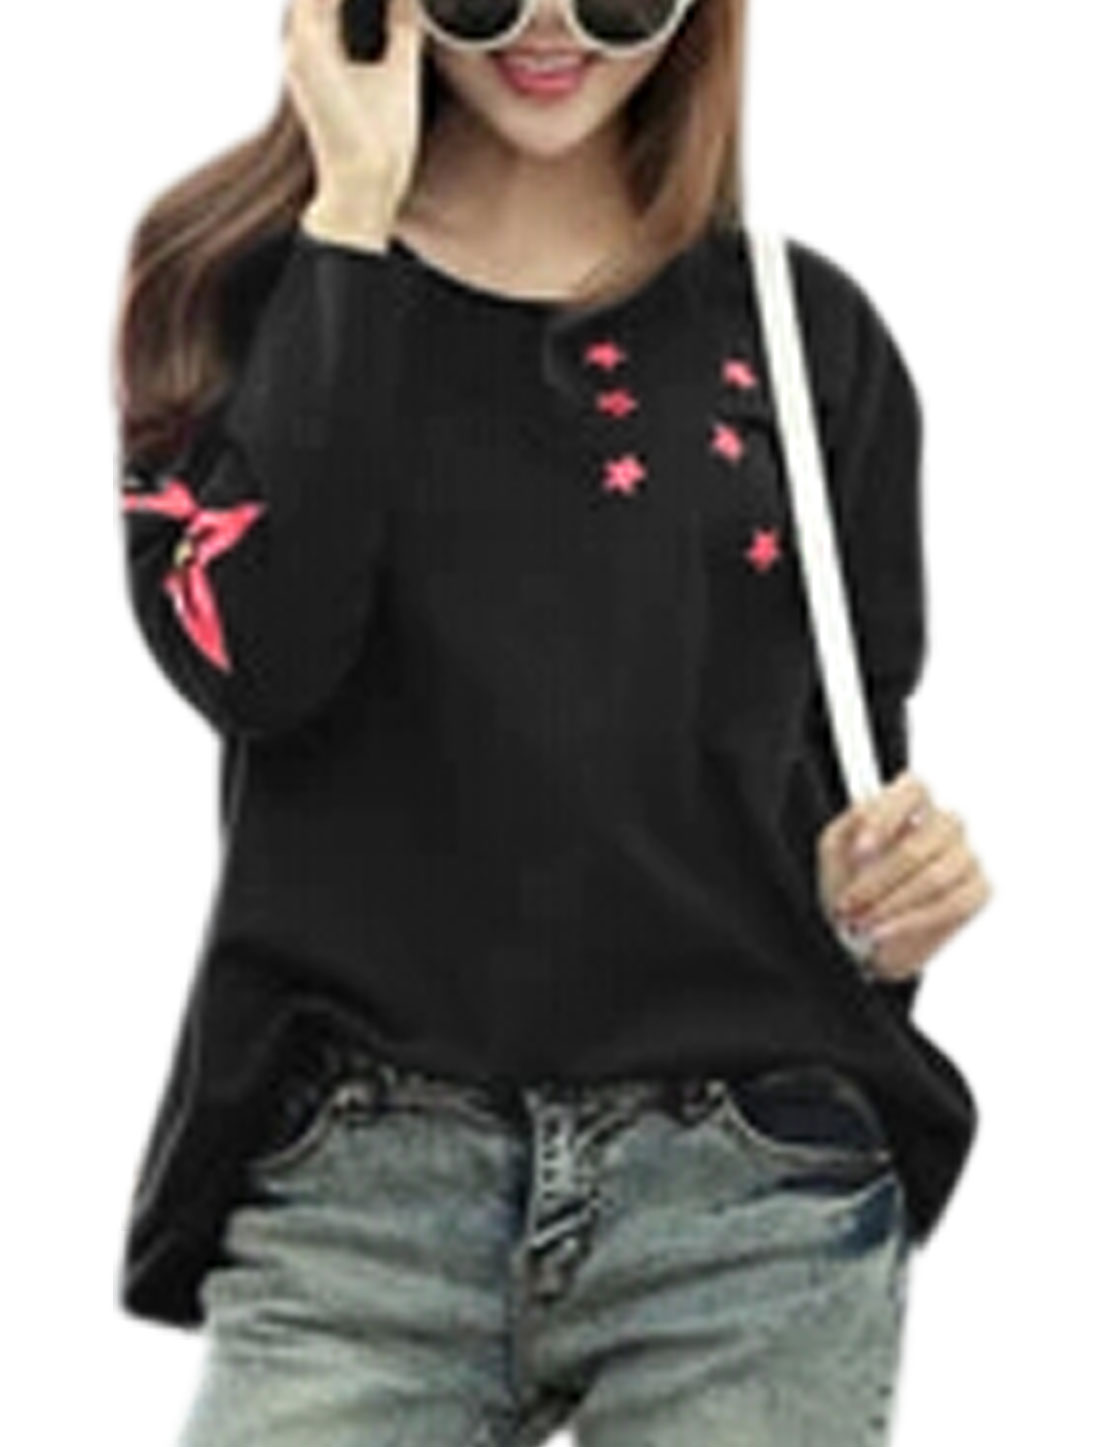 Lady Stars Pattern Cut Out Back Design Casual Blouse Black S